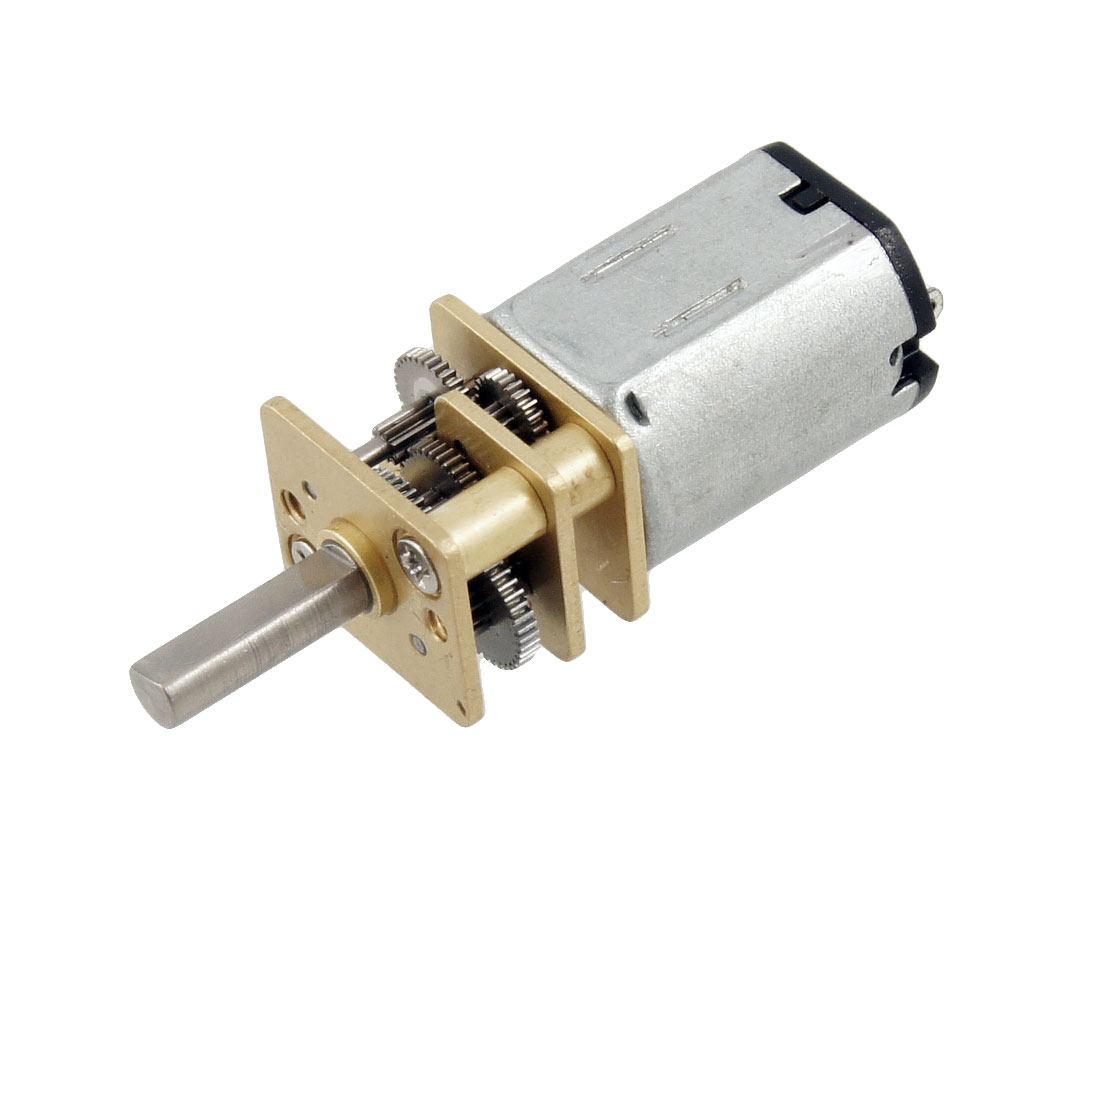 Uxcell(R) 30 RPM DC 6V 2.5KG Micro Gear Box Speed Reducing Motor